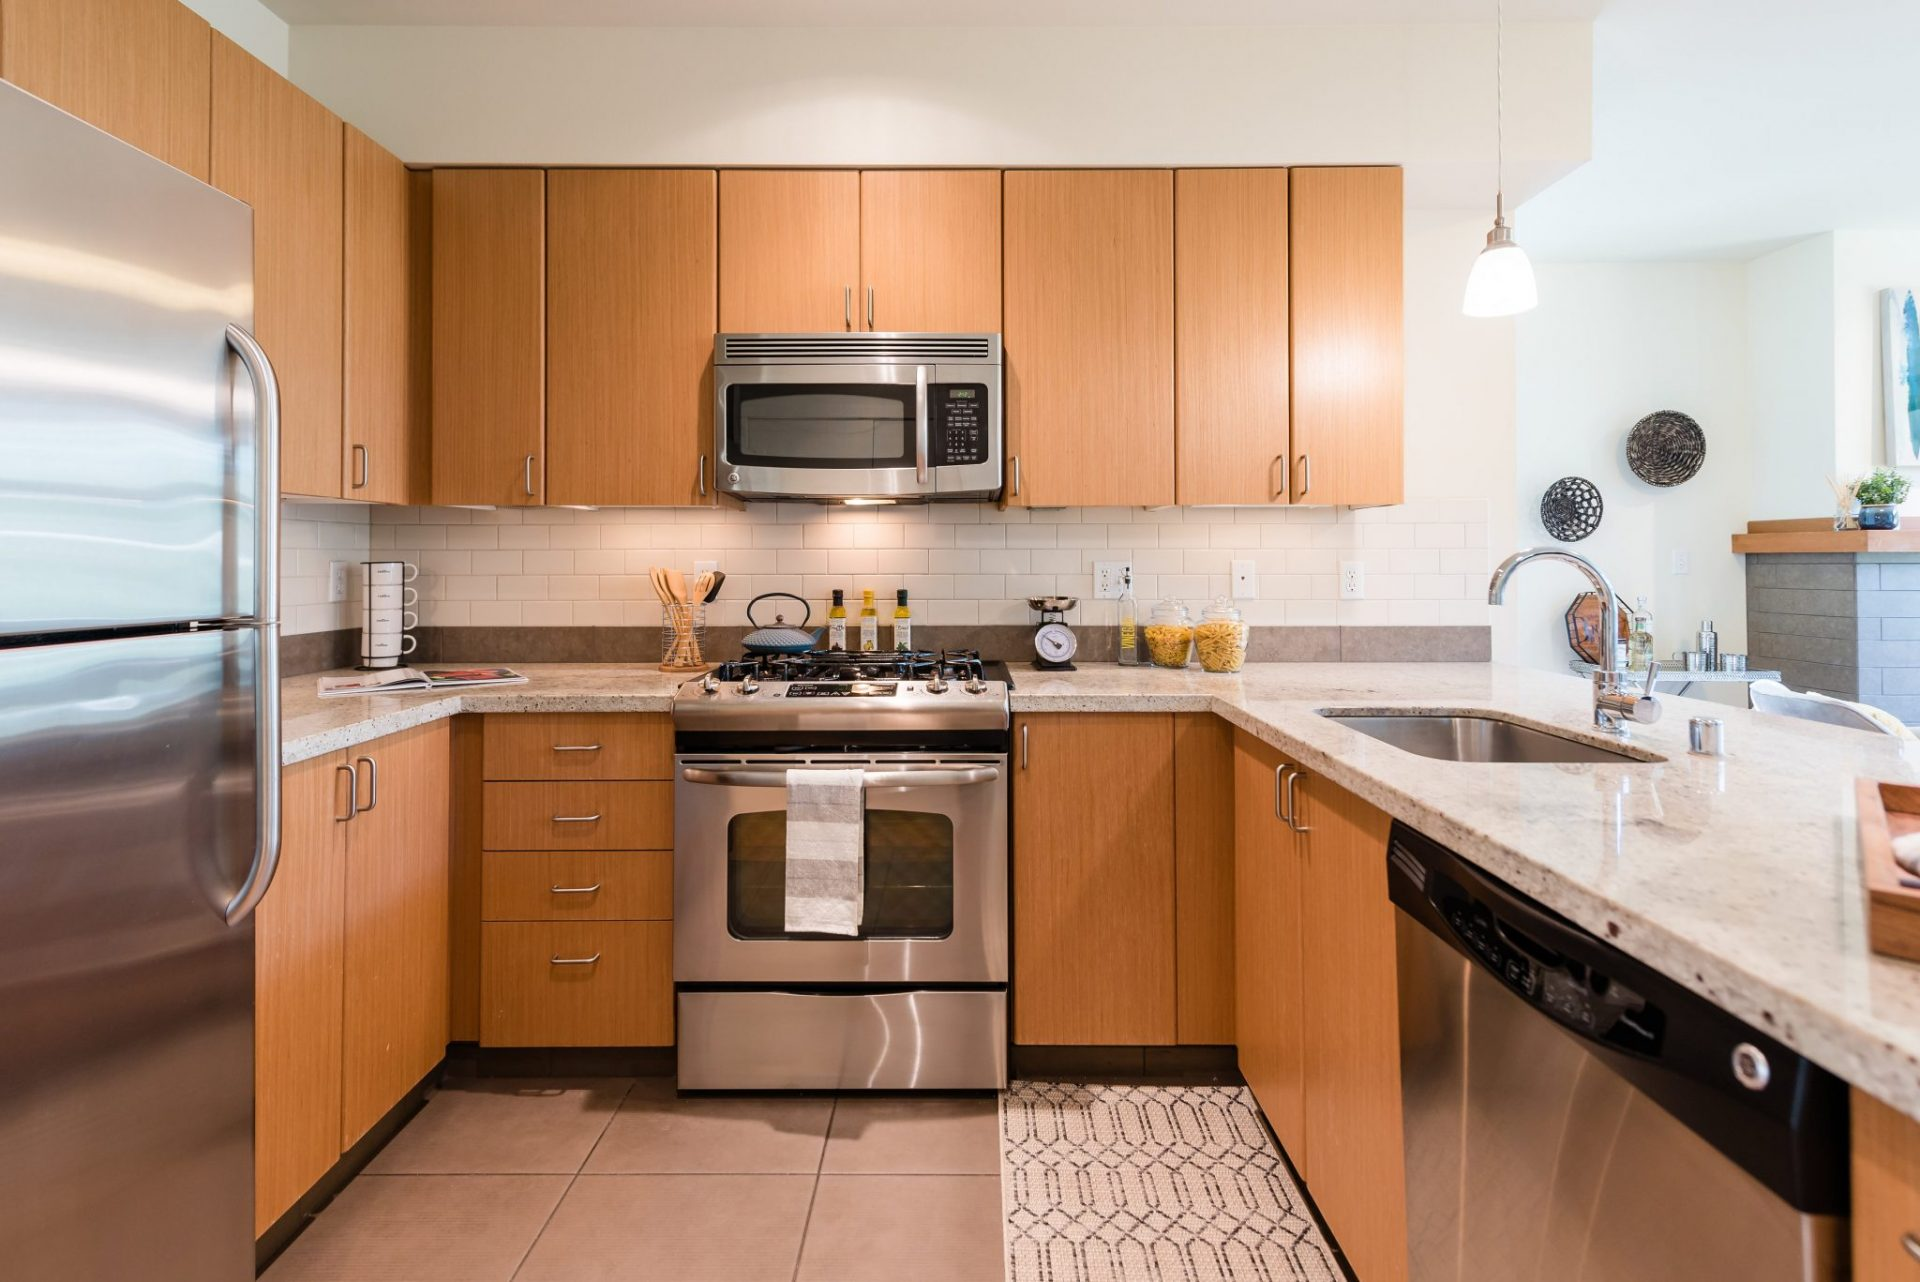 Modern Kitchens With Stainless Steel Appliances At Thornton Place Apartments In Seattle, WA